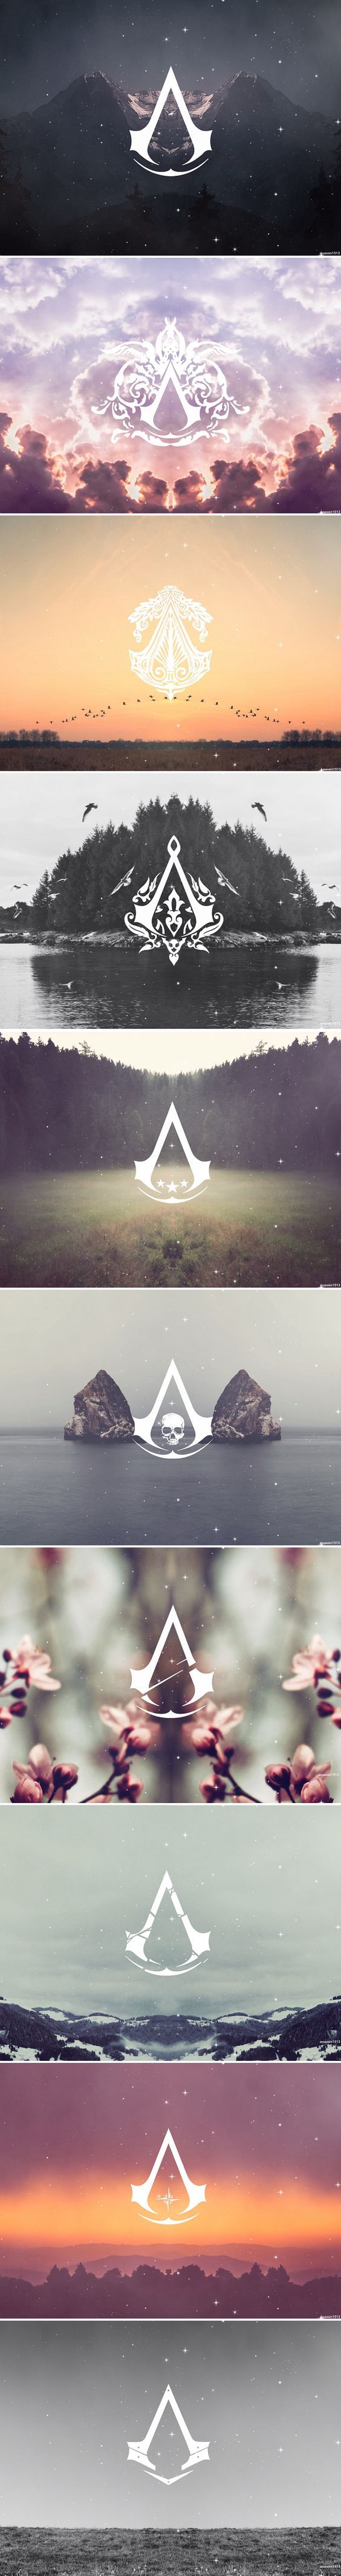 Assassin's Creed Logos: